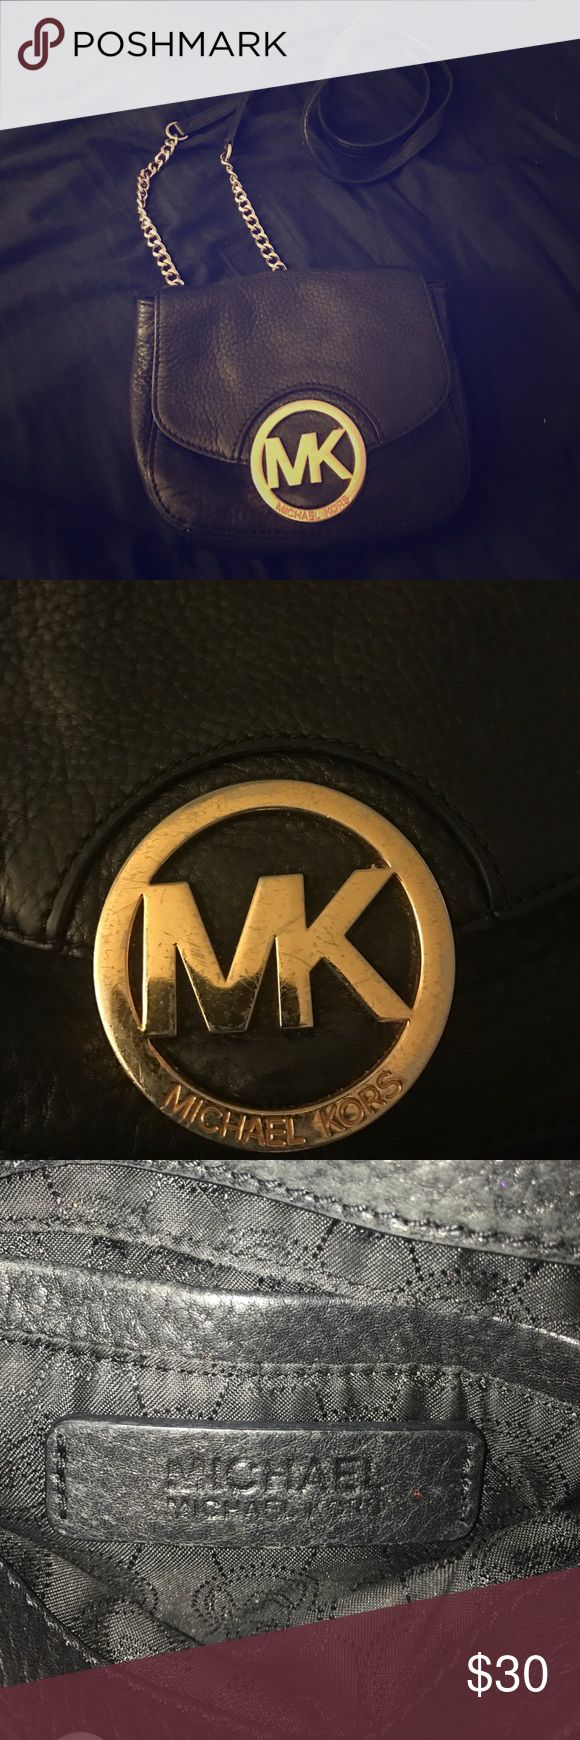 Michael kors side purse Used Michael Kors side purse. Compliments any outfit! Slightly worn on the black strap and small scratches on the MK emblem. But still in great condition! KORS Michael Kors Bags Satchels